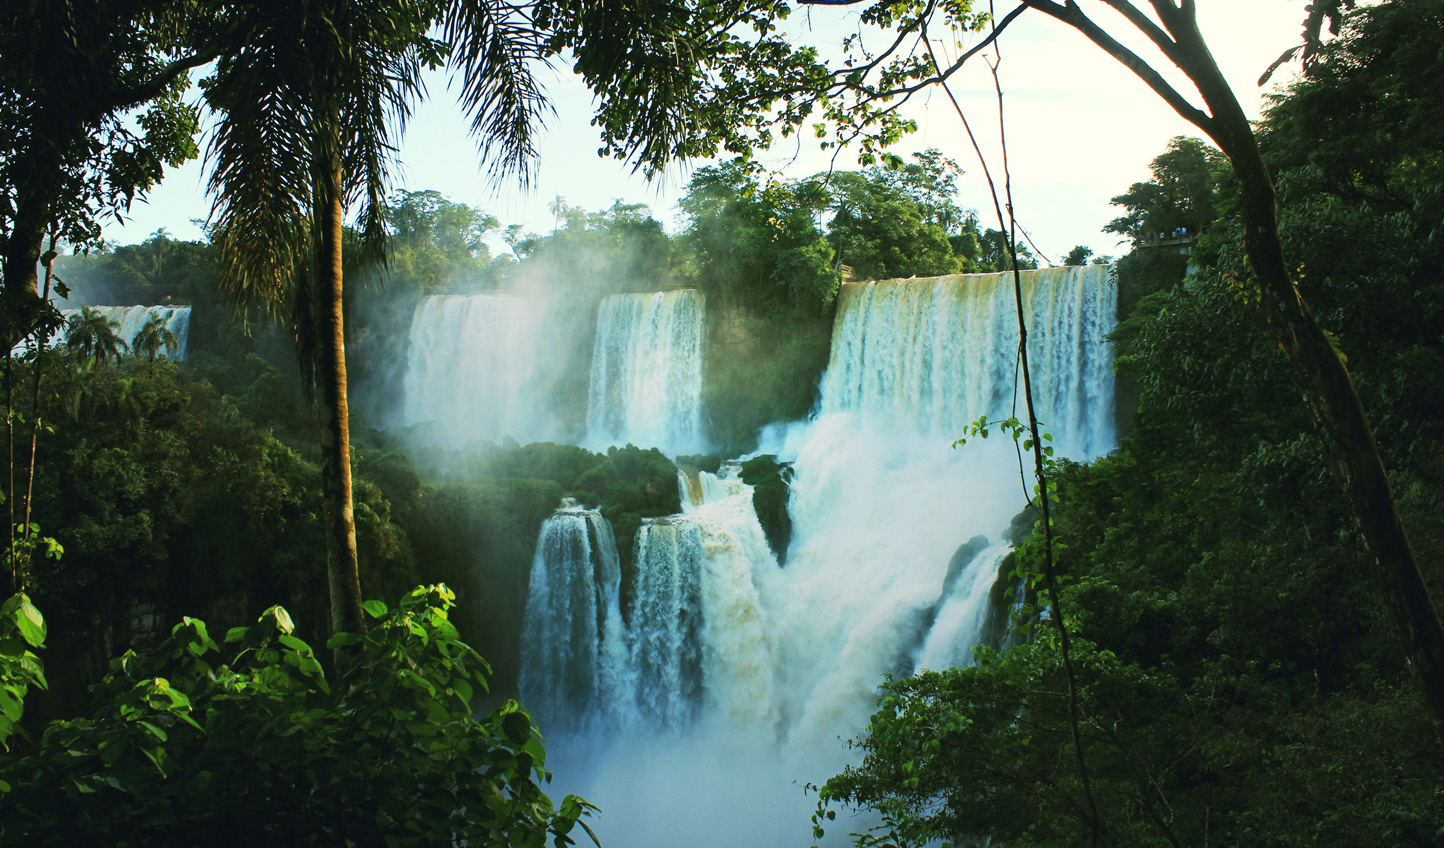 Take in the wonder of the Iguazu Falls